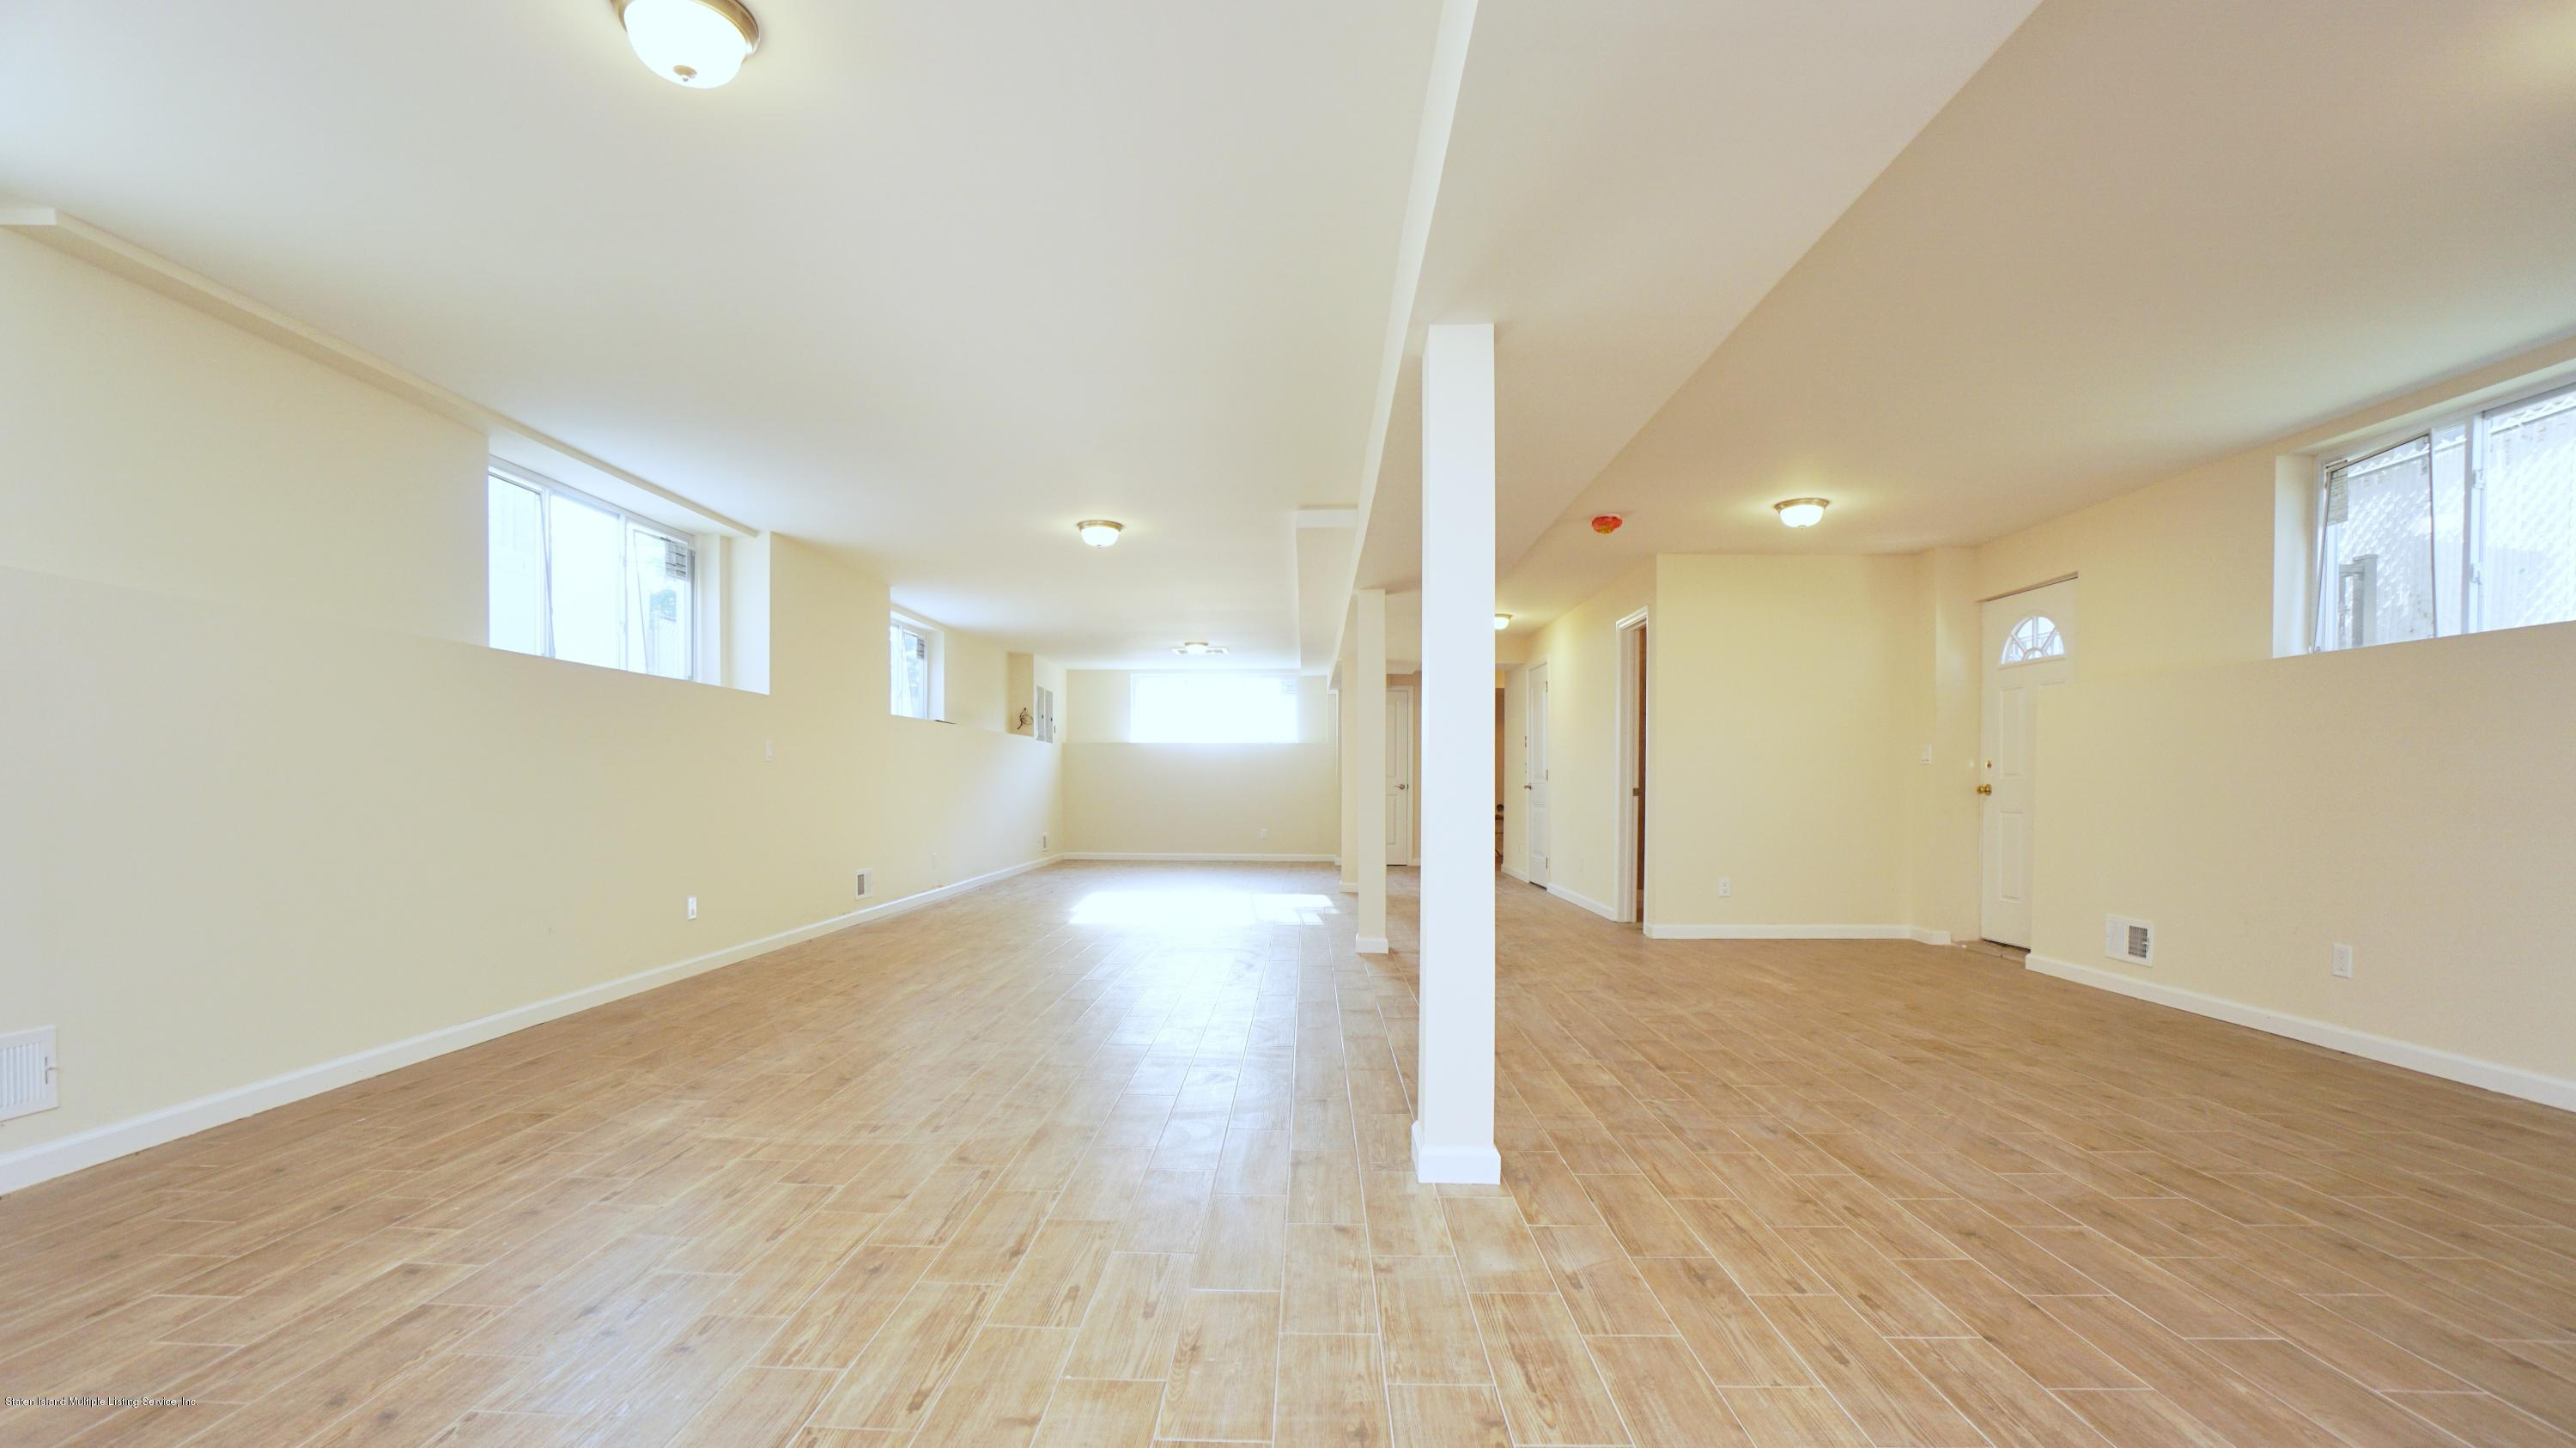 Two Family - Detached 133 Woodrow Road  Staten Island, NY 10312, MLS-1138555-15